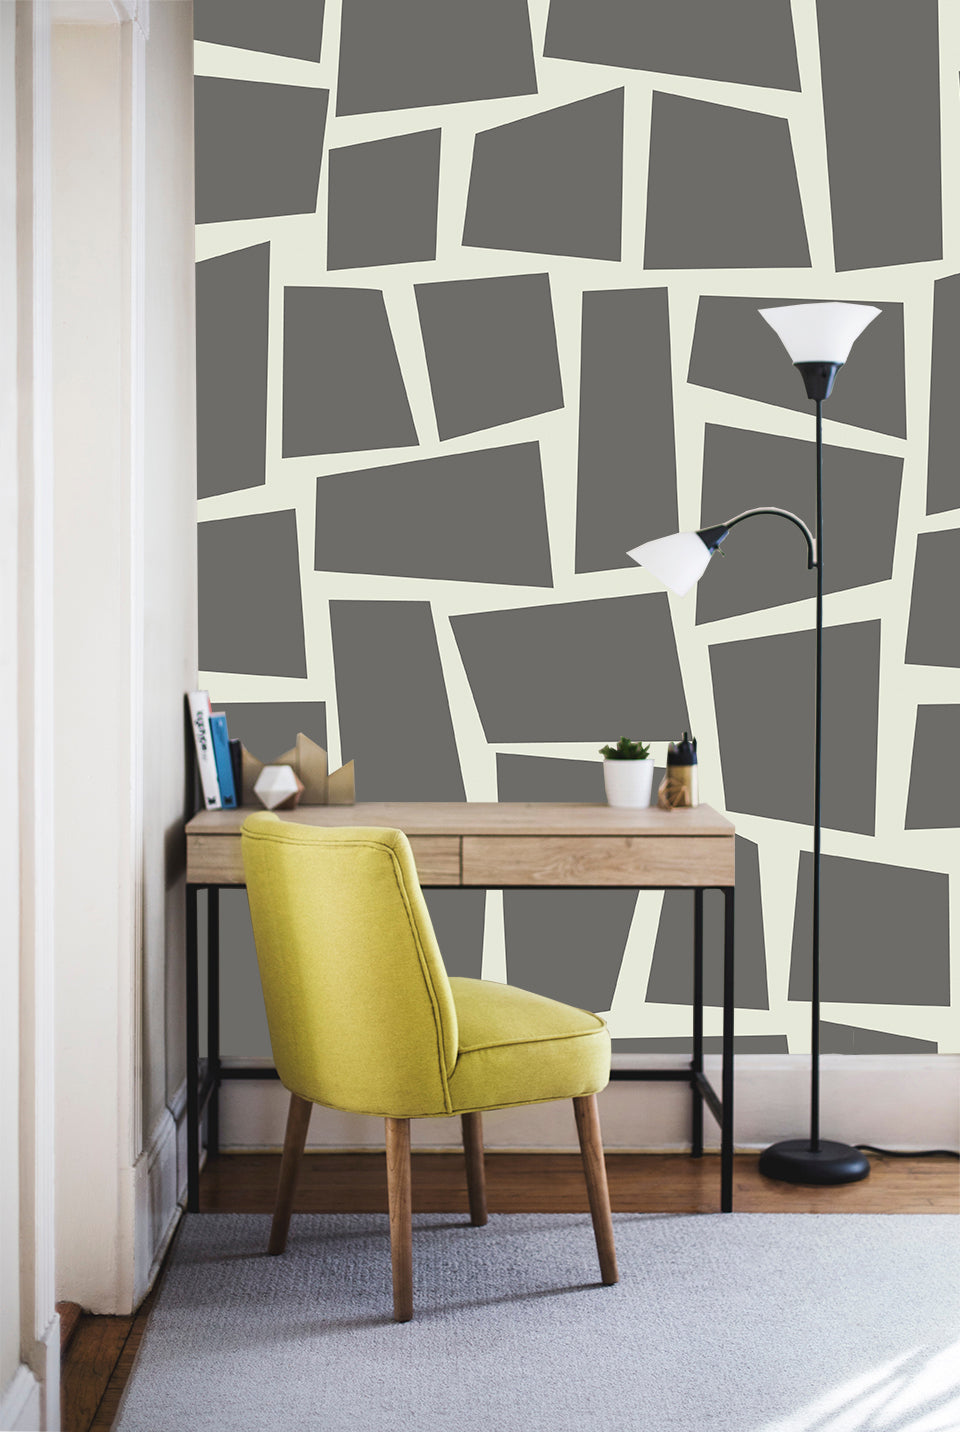 large scale modern geometric wallpaper. Gray and white.